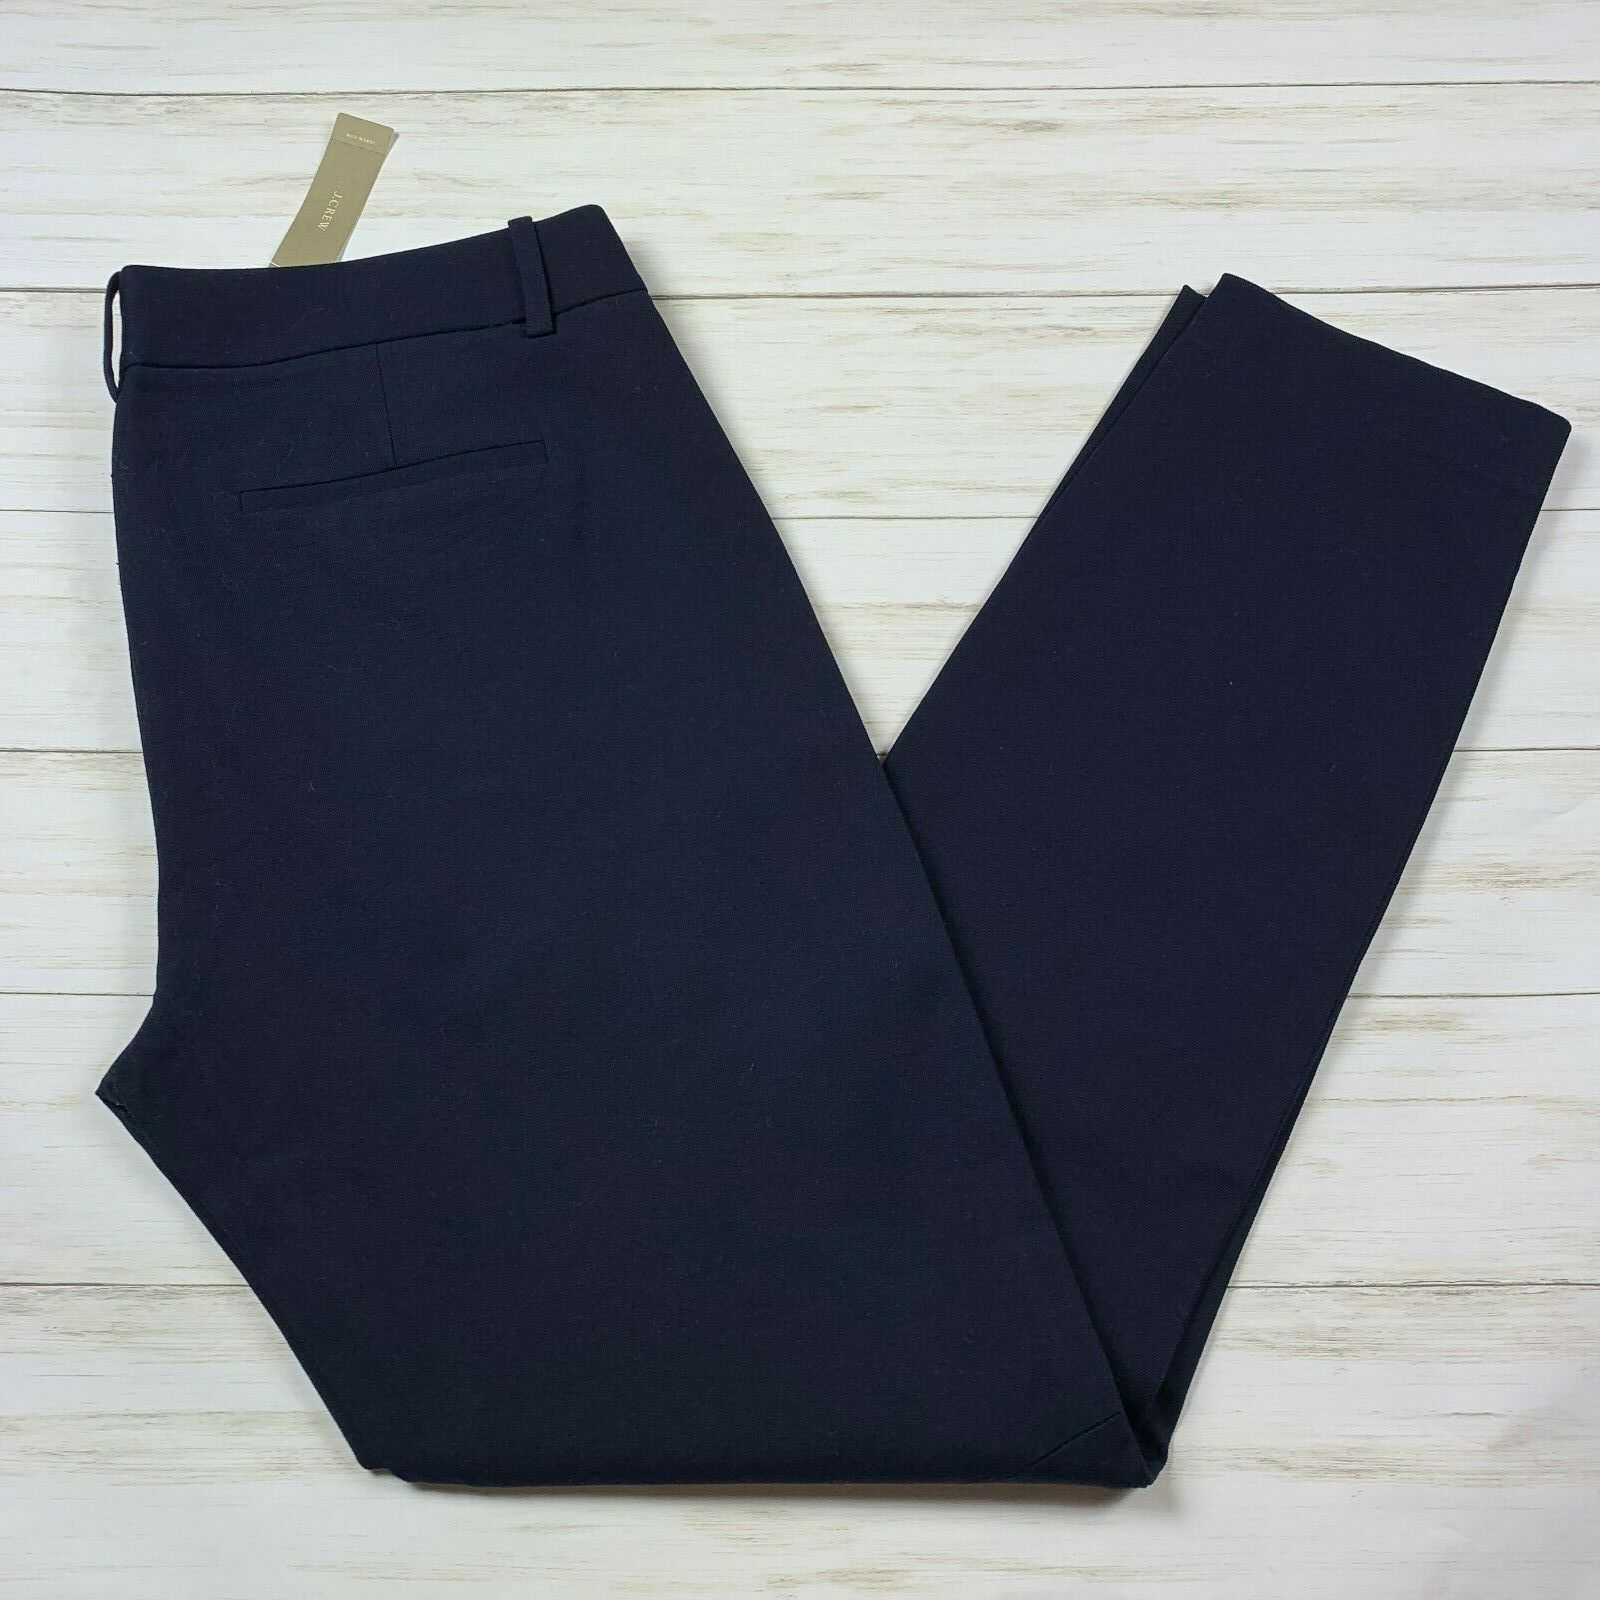 NEW NWT J. Crew Stretch Women's Tall Minnie Pant in Stretch Twill sz 10 navy